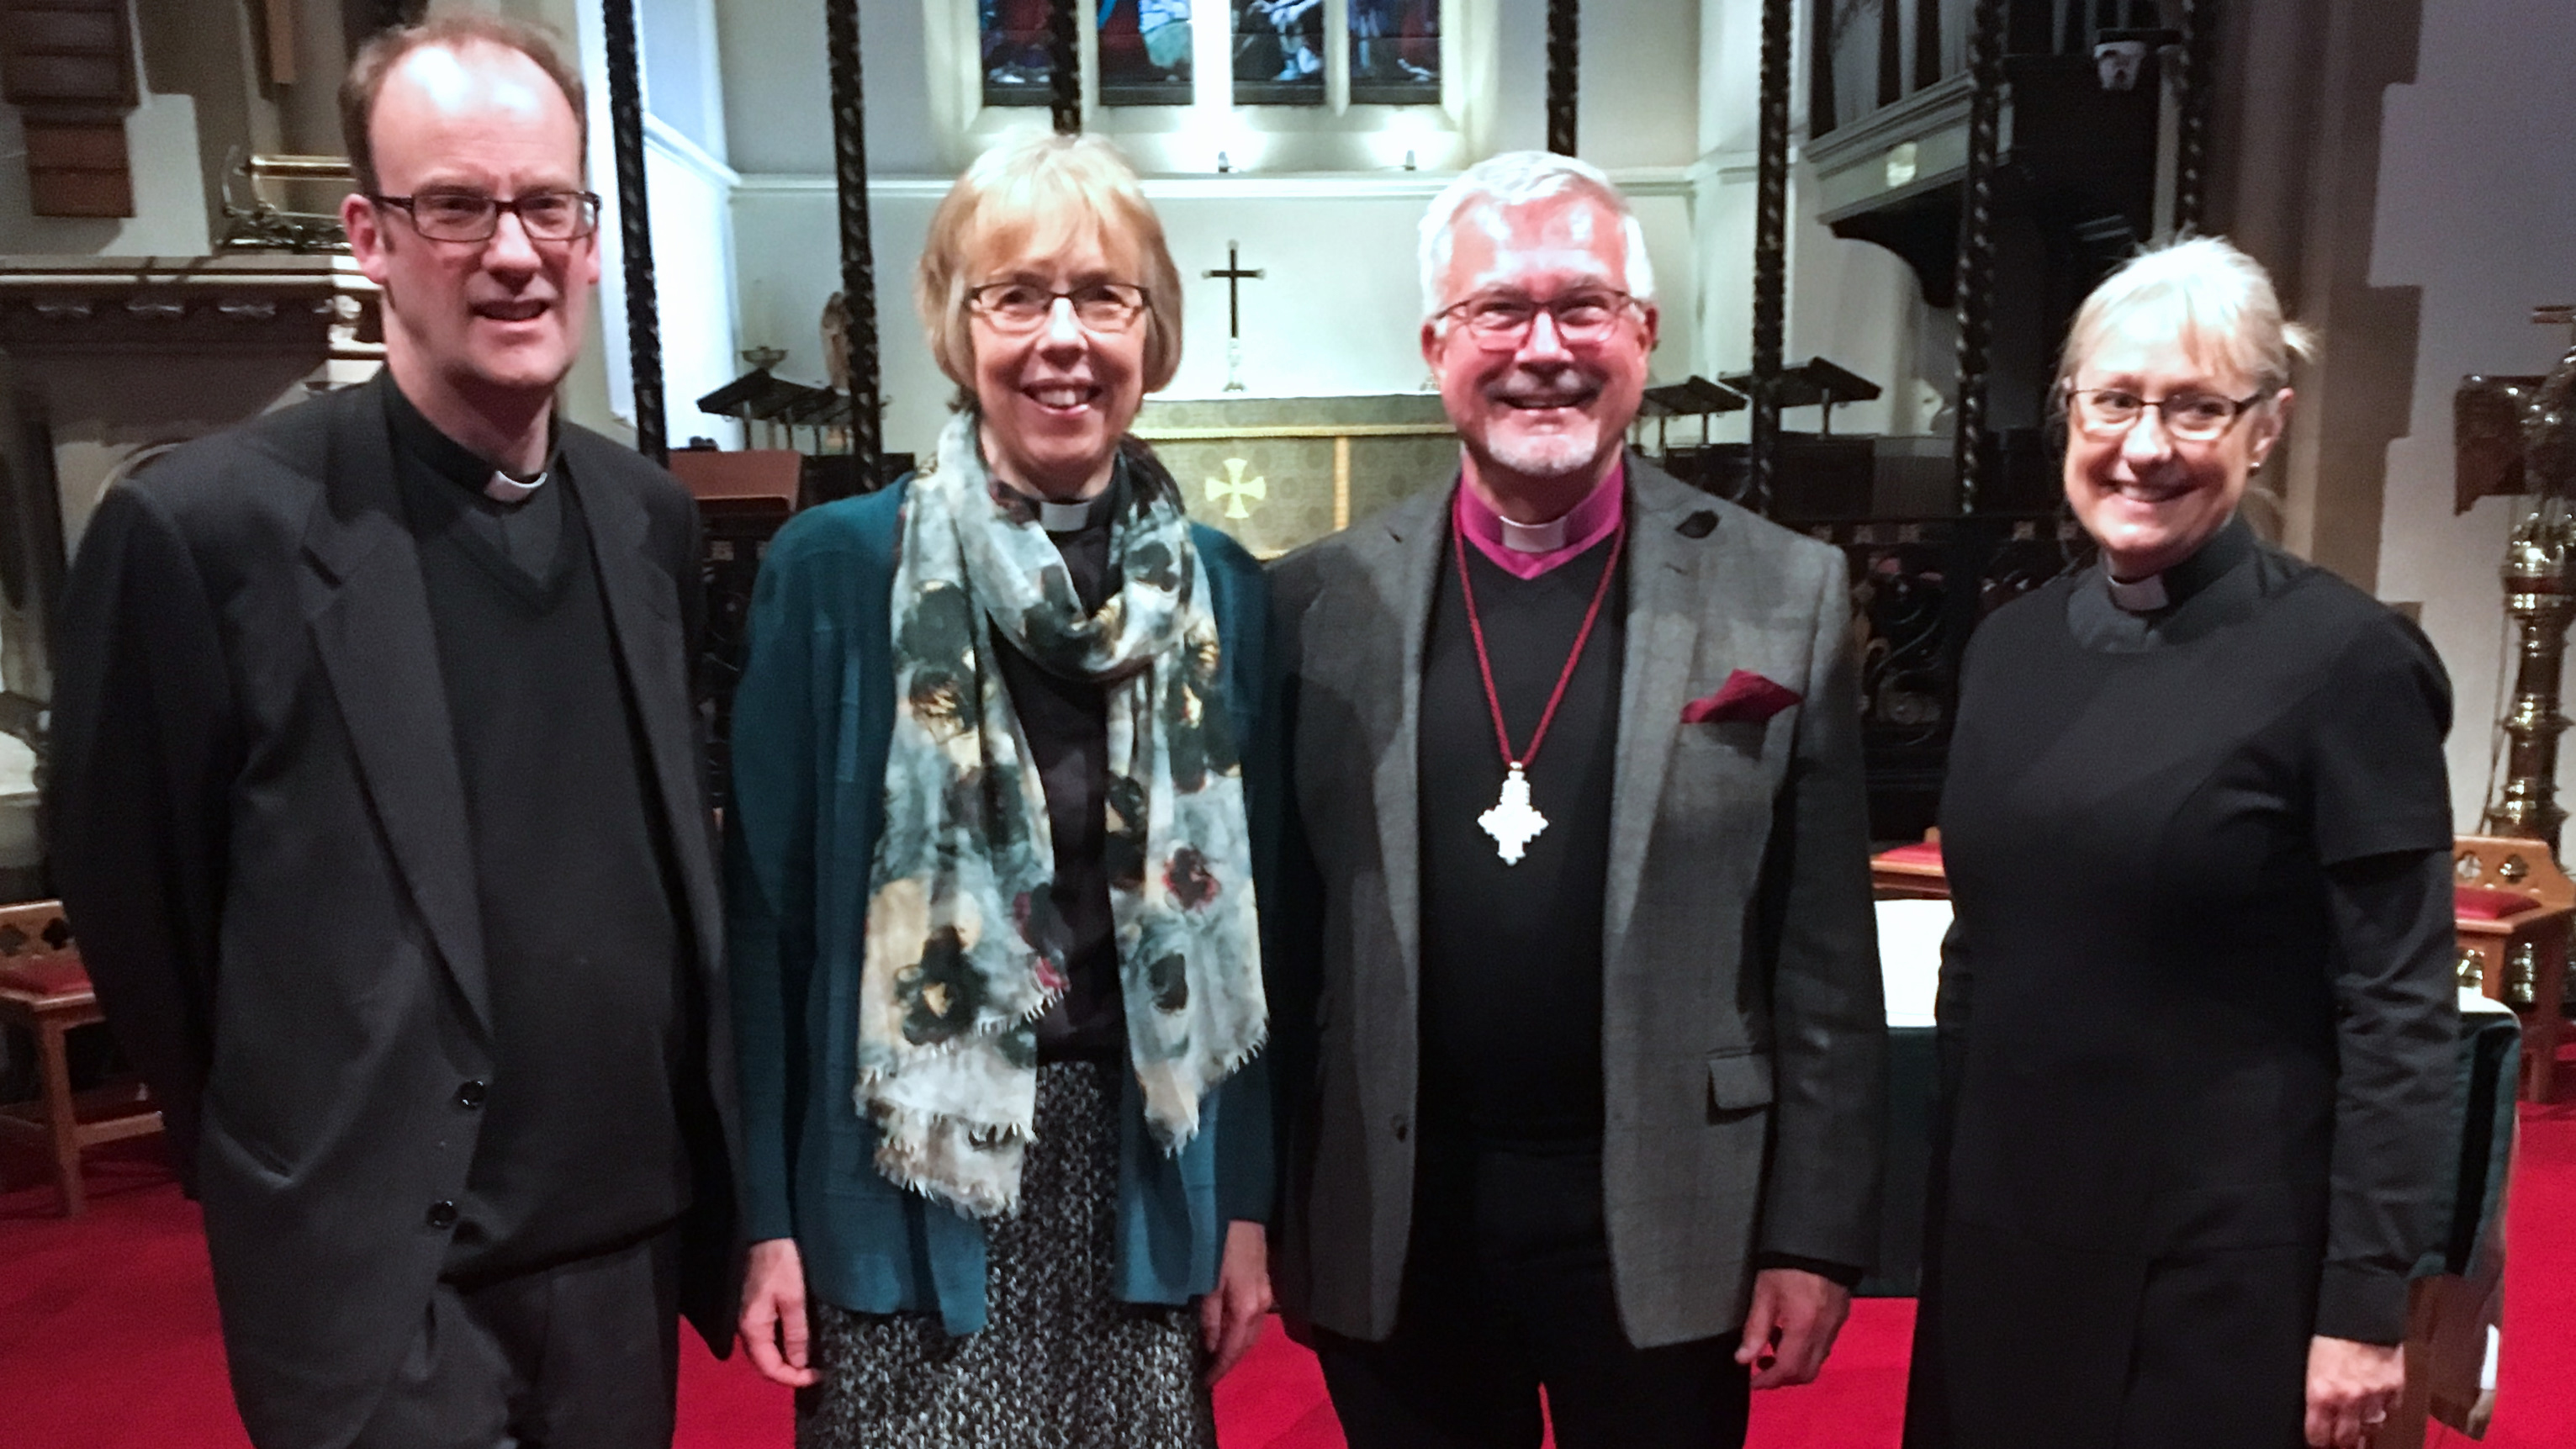 St Luke's Kick Off Feb 11 2018 Bishop Andrew Fr Jeremy Rev Sally Rev Joan YOM KO banner.jpg